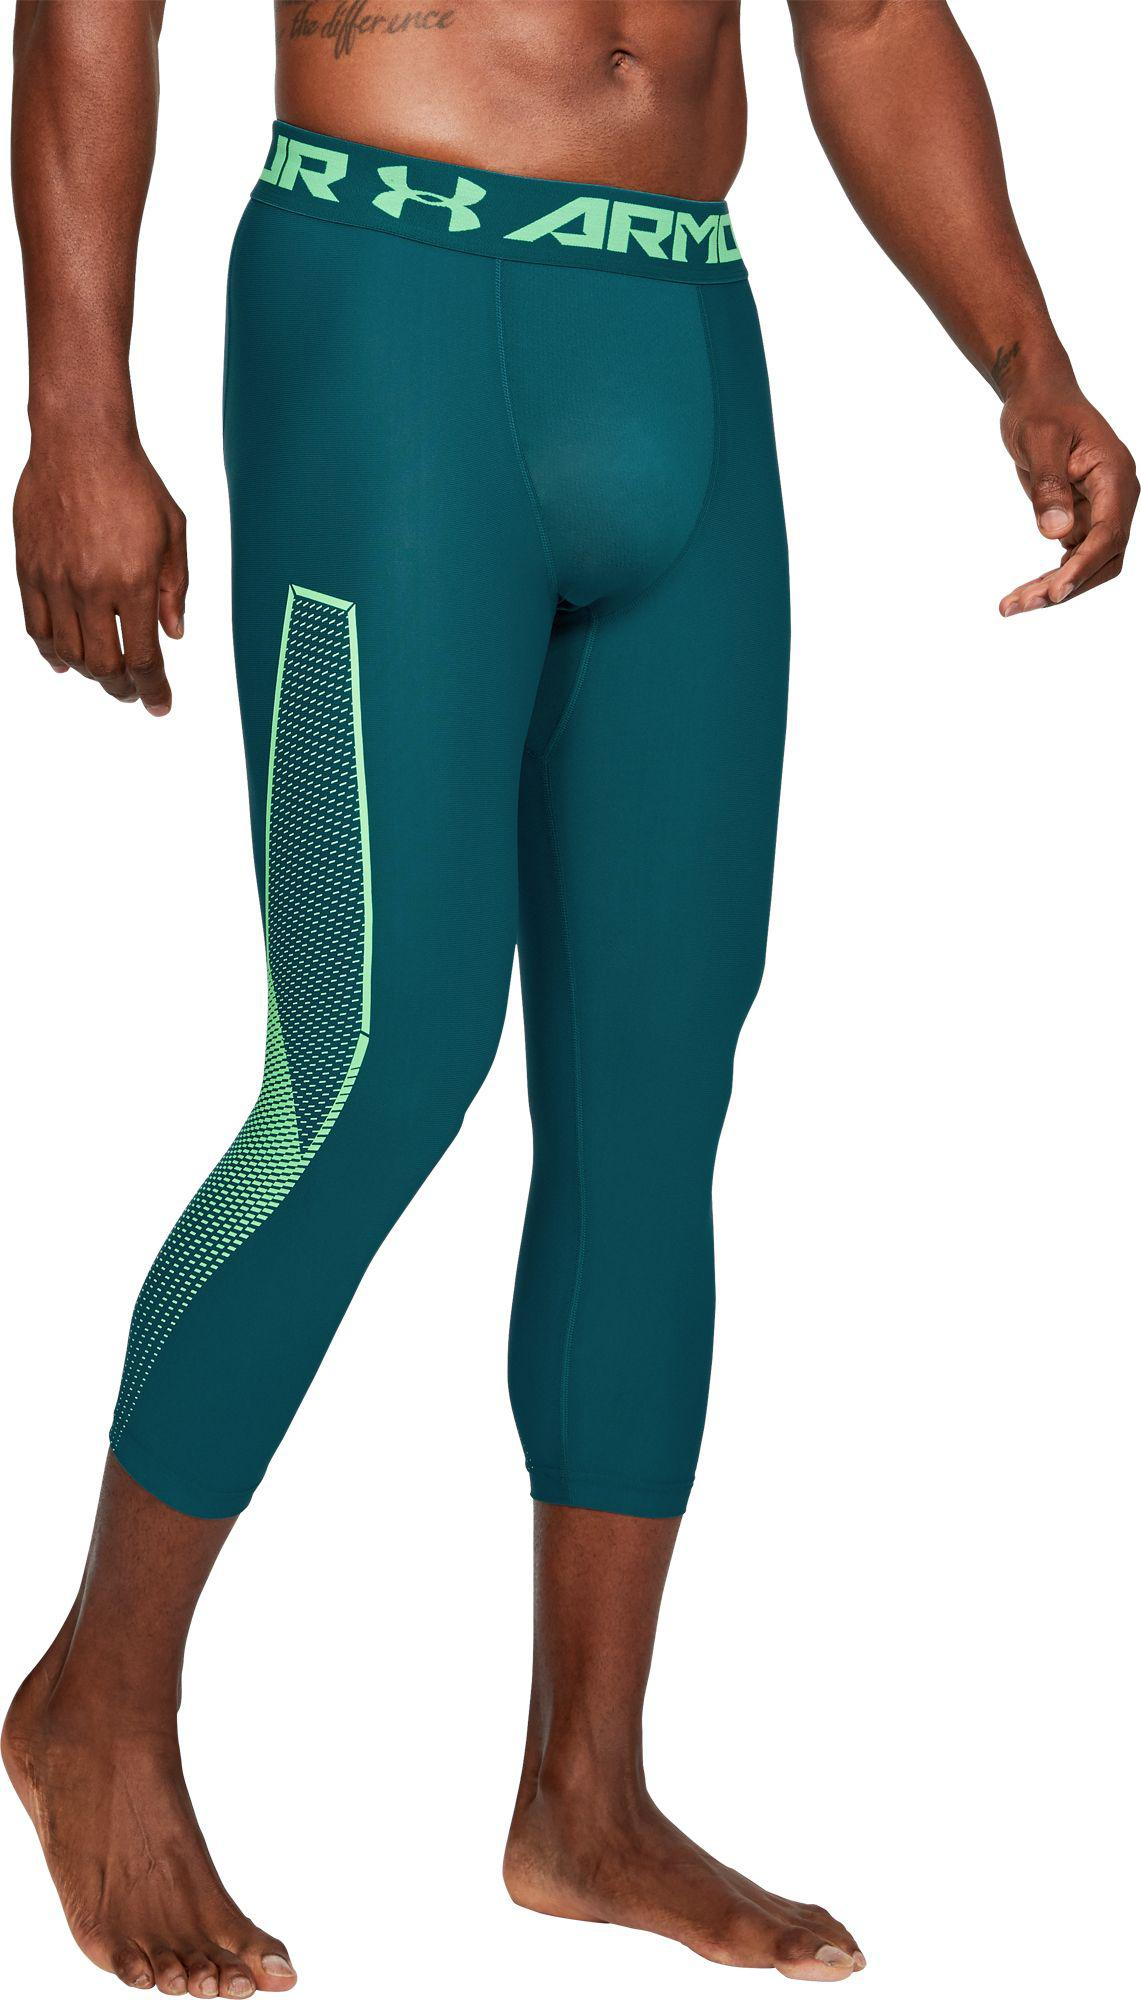 441de2af01acf6 Under Armour - Green Heatgear Armour Graphic 3/4 Length Tights for Men -  Lyst